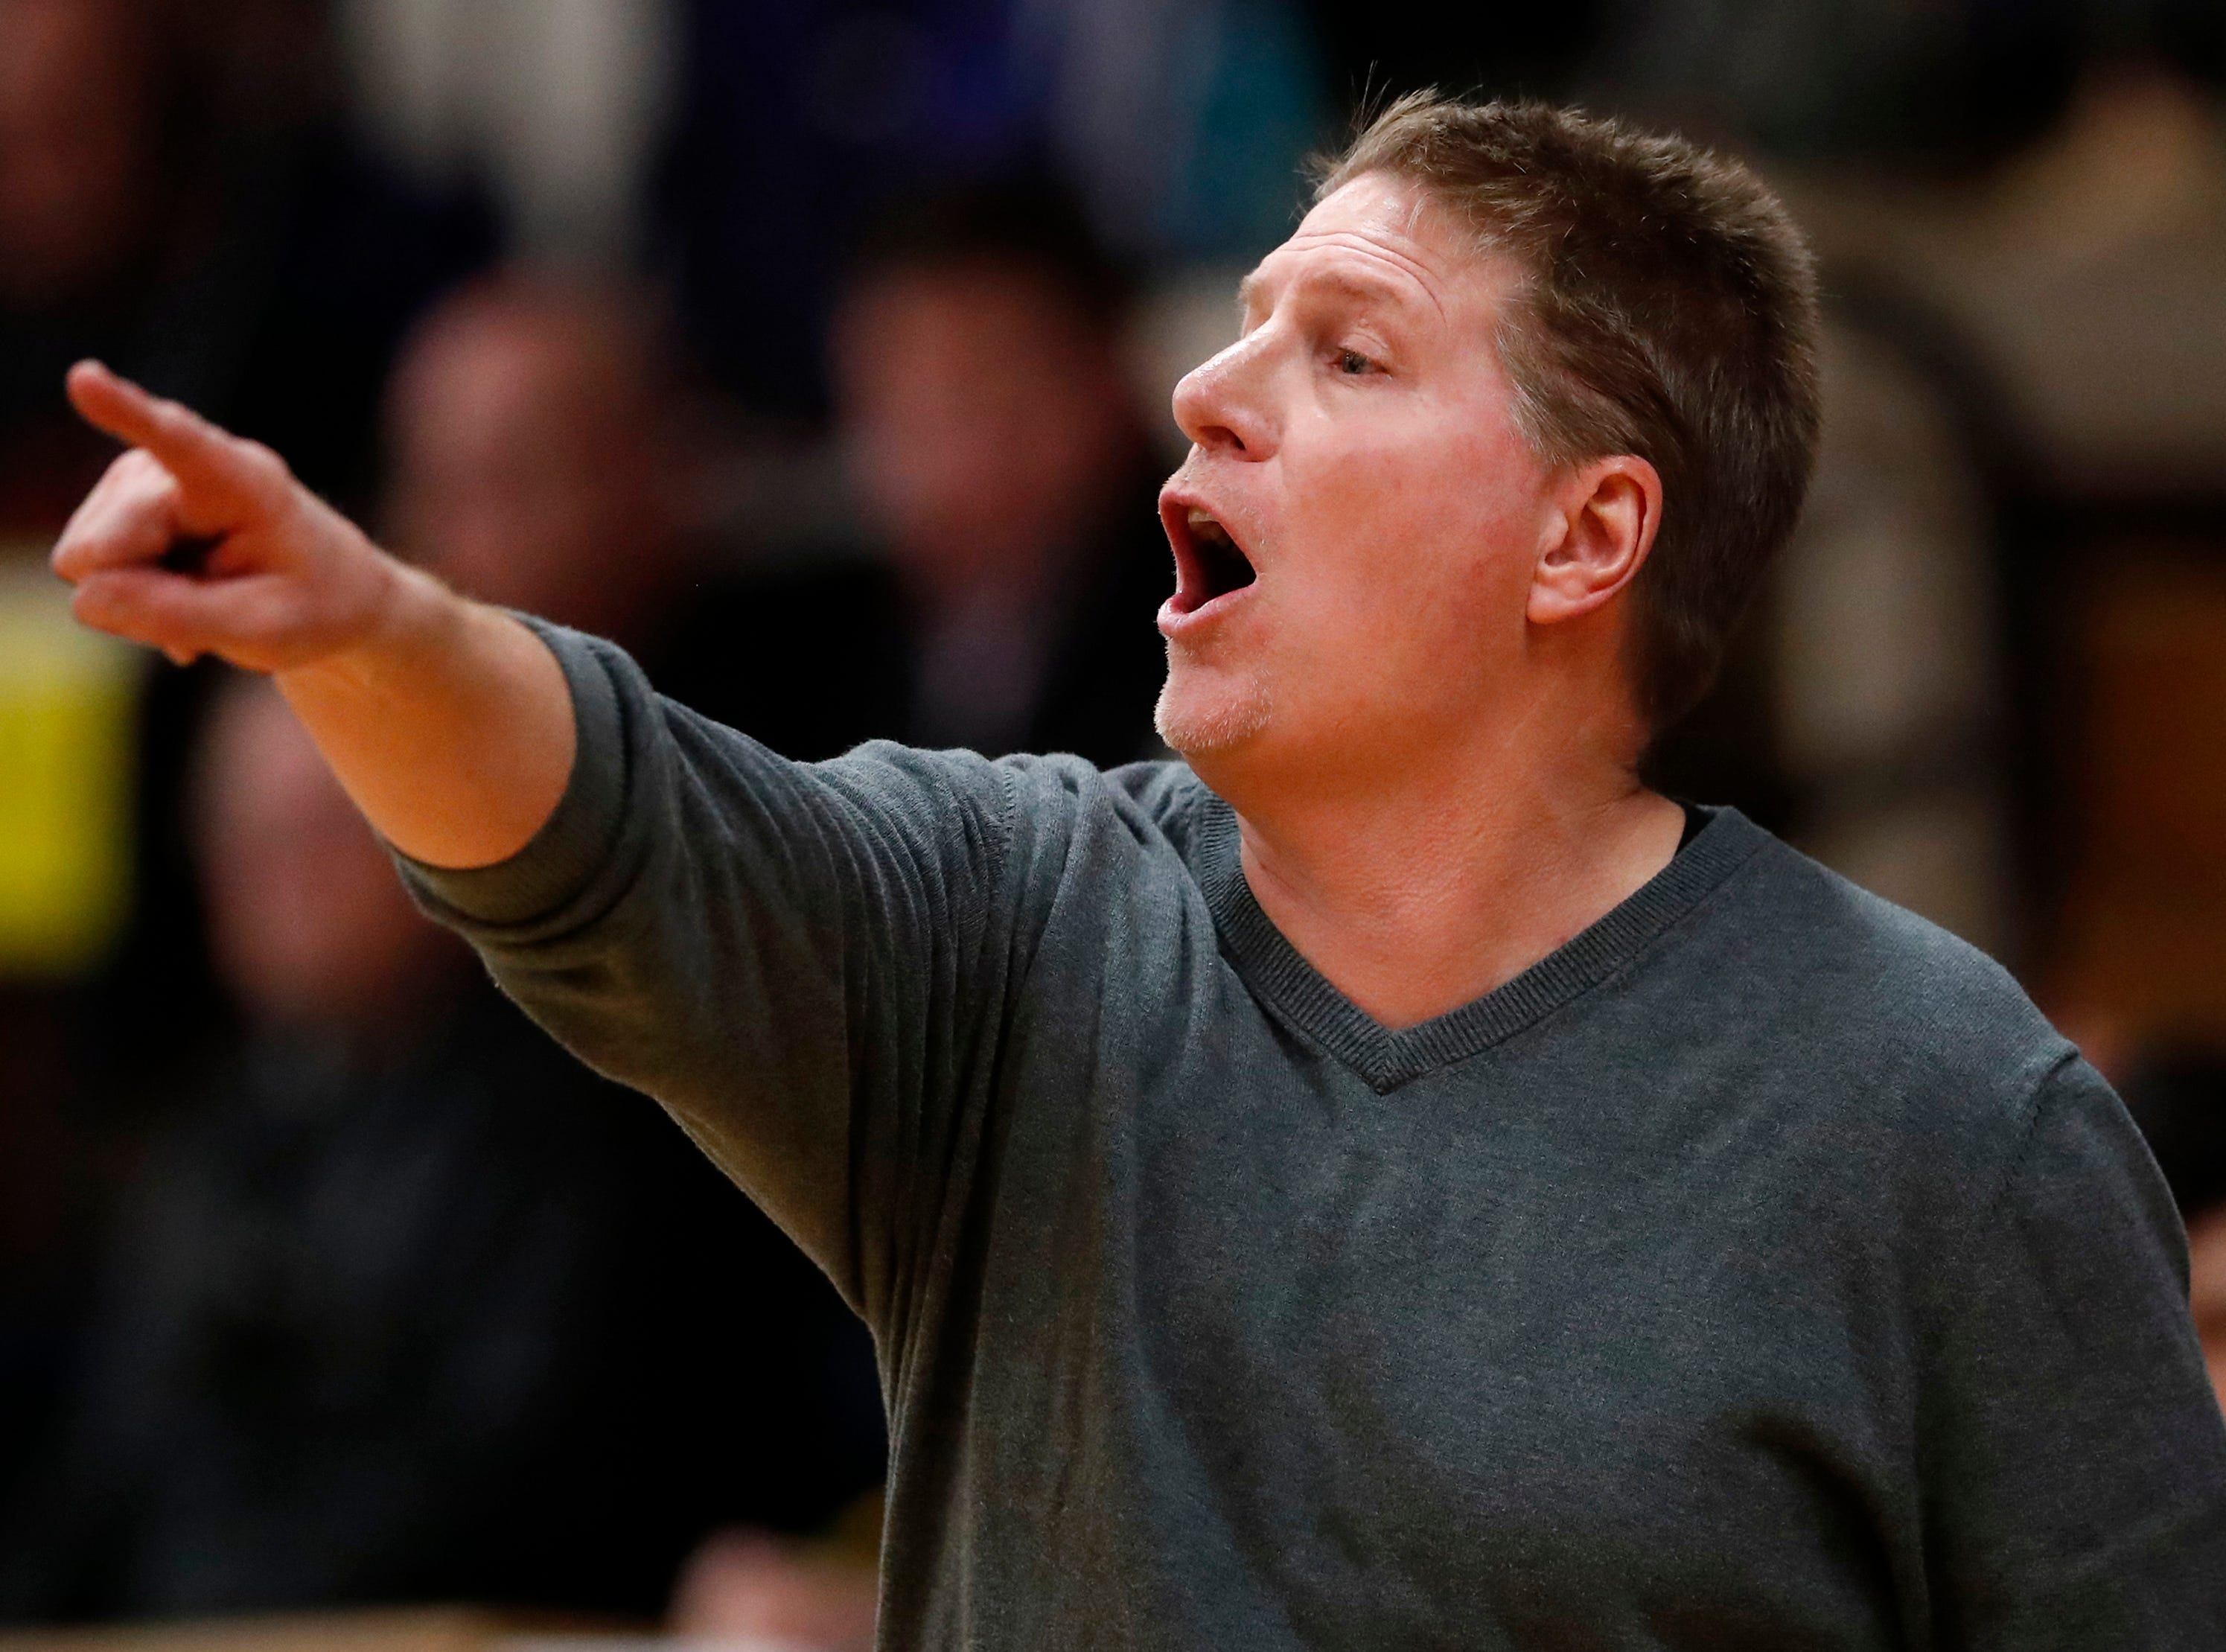 Seymour High School's head coach Jon Murphy directs his team during their game against Xavier High School Friday, Feb. 8, 2019, in Appleton, Wis.Danny Damiani/USA TODAY NETWORK-Wisconsin